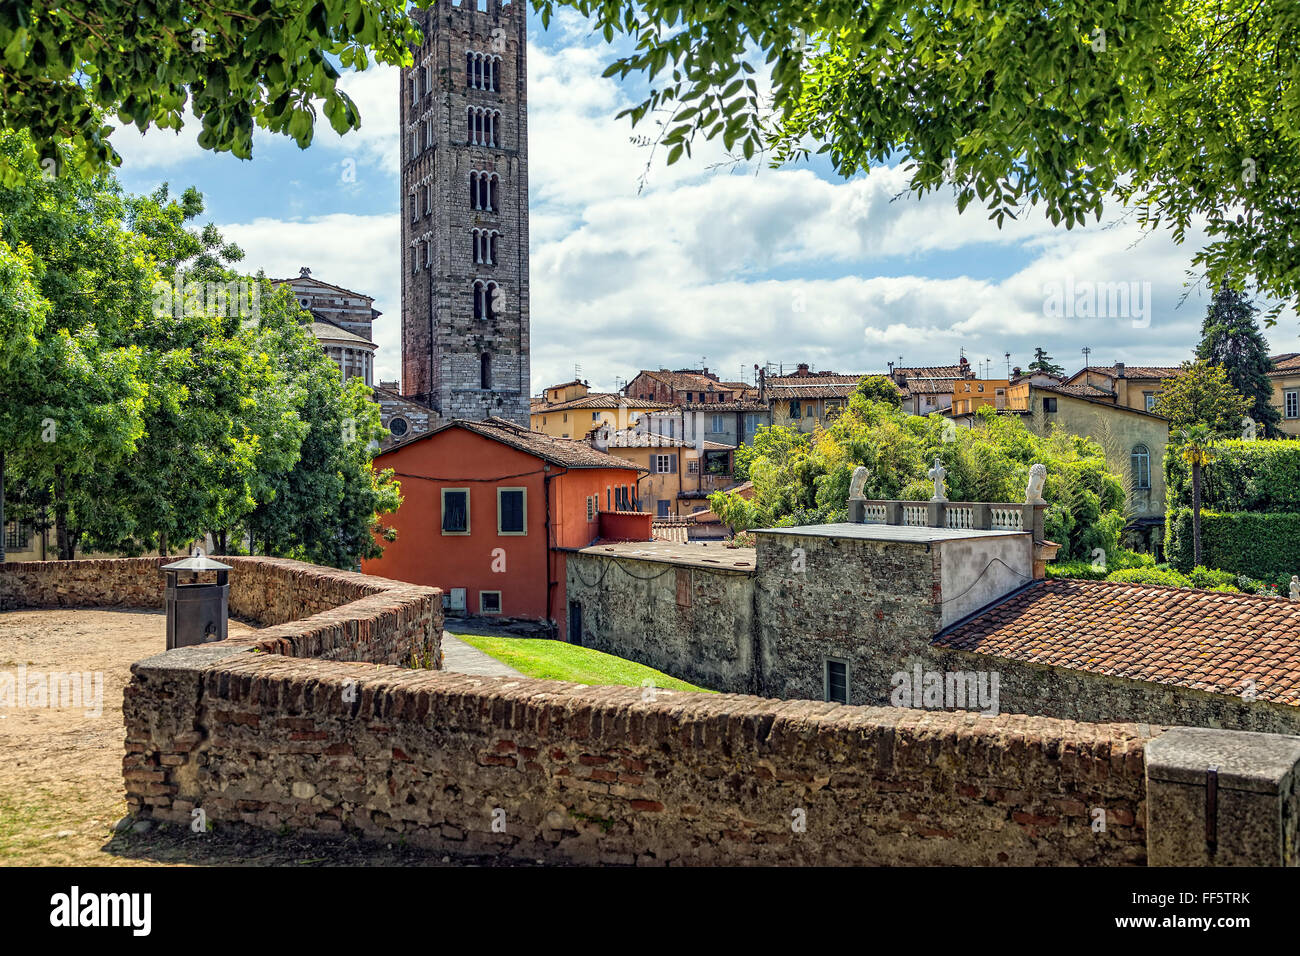 Medieval Italian town of Lucca - Stock Image